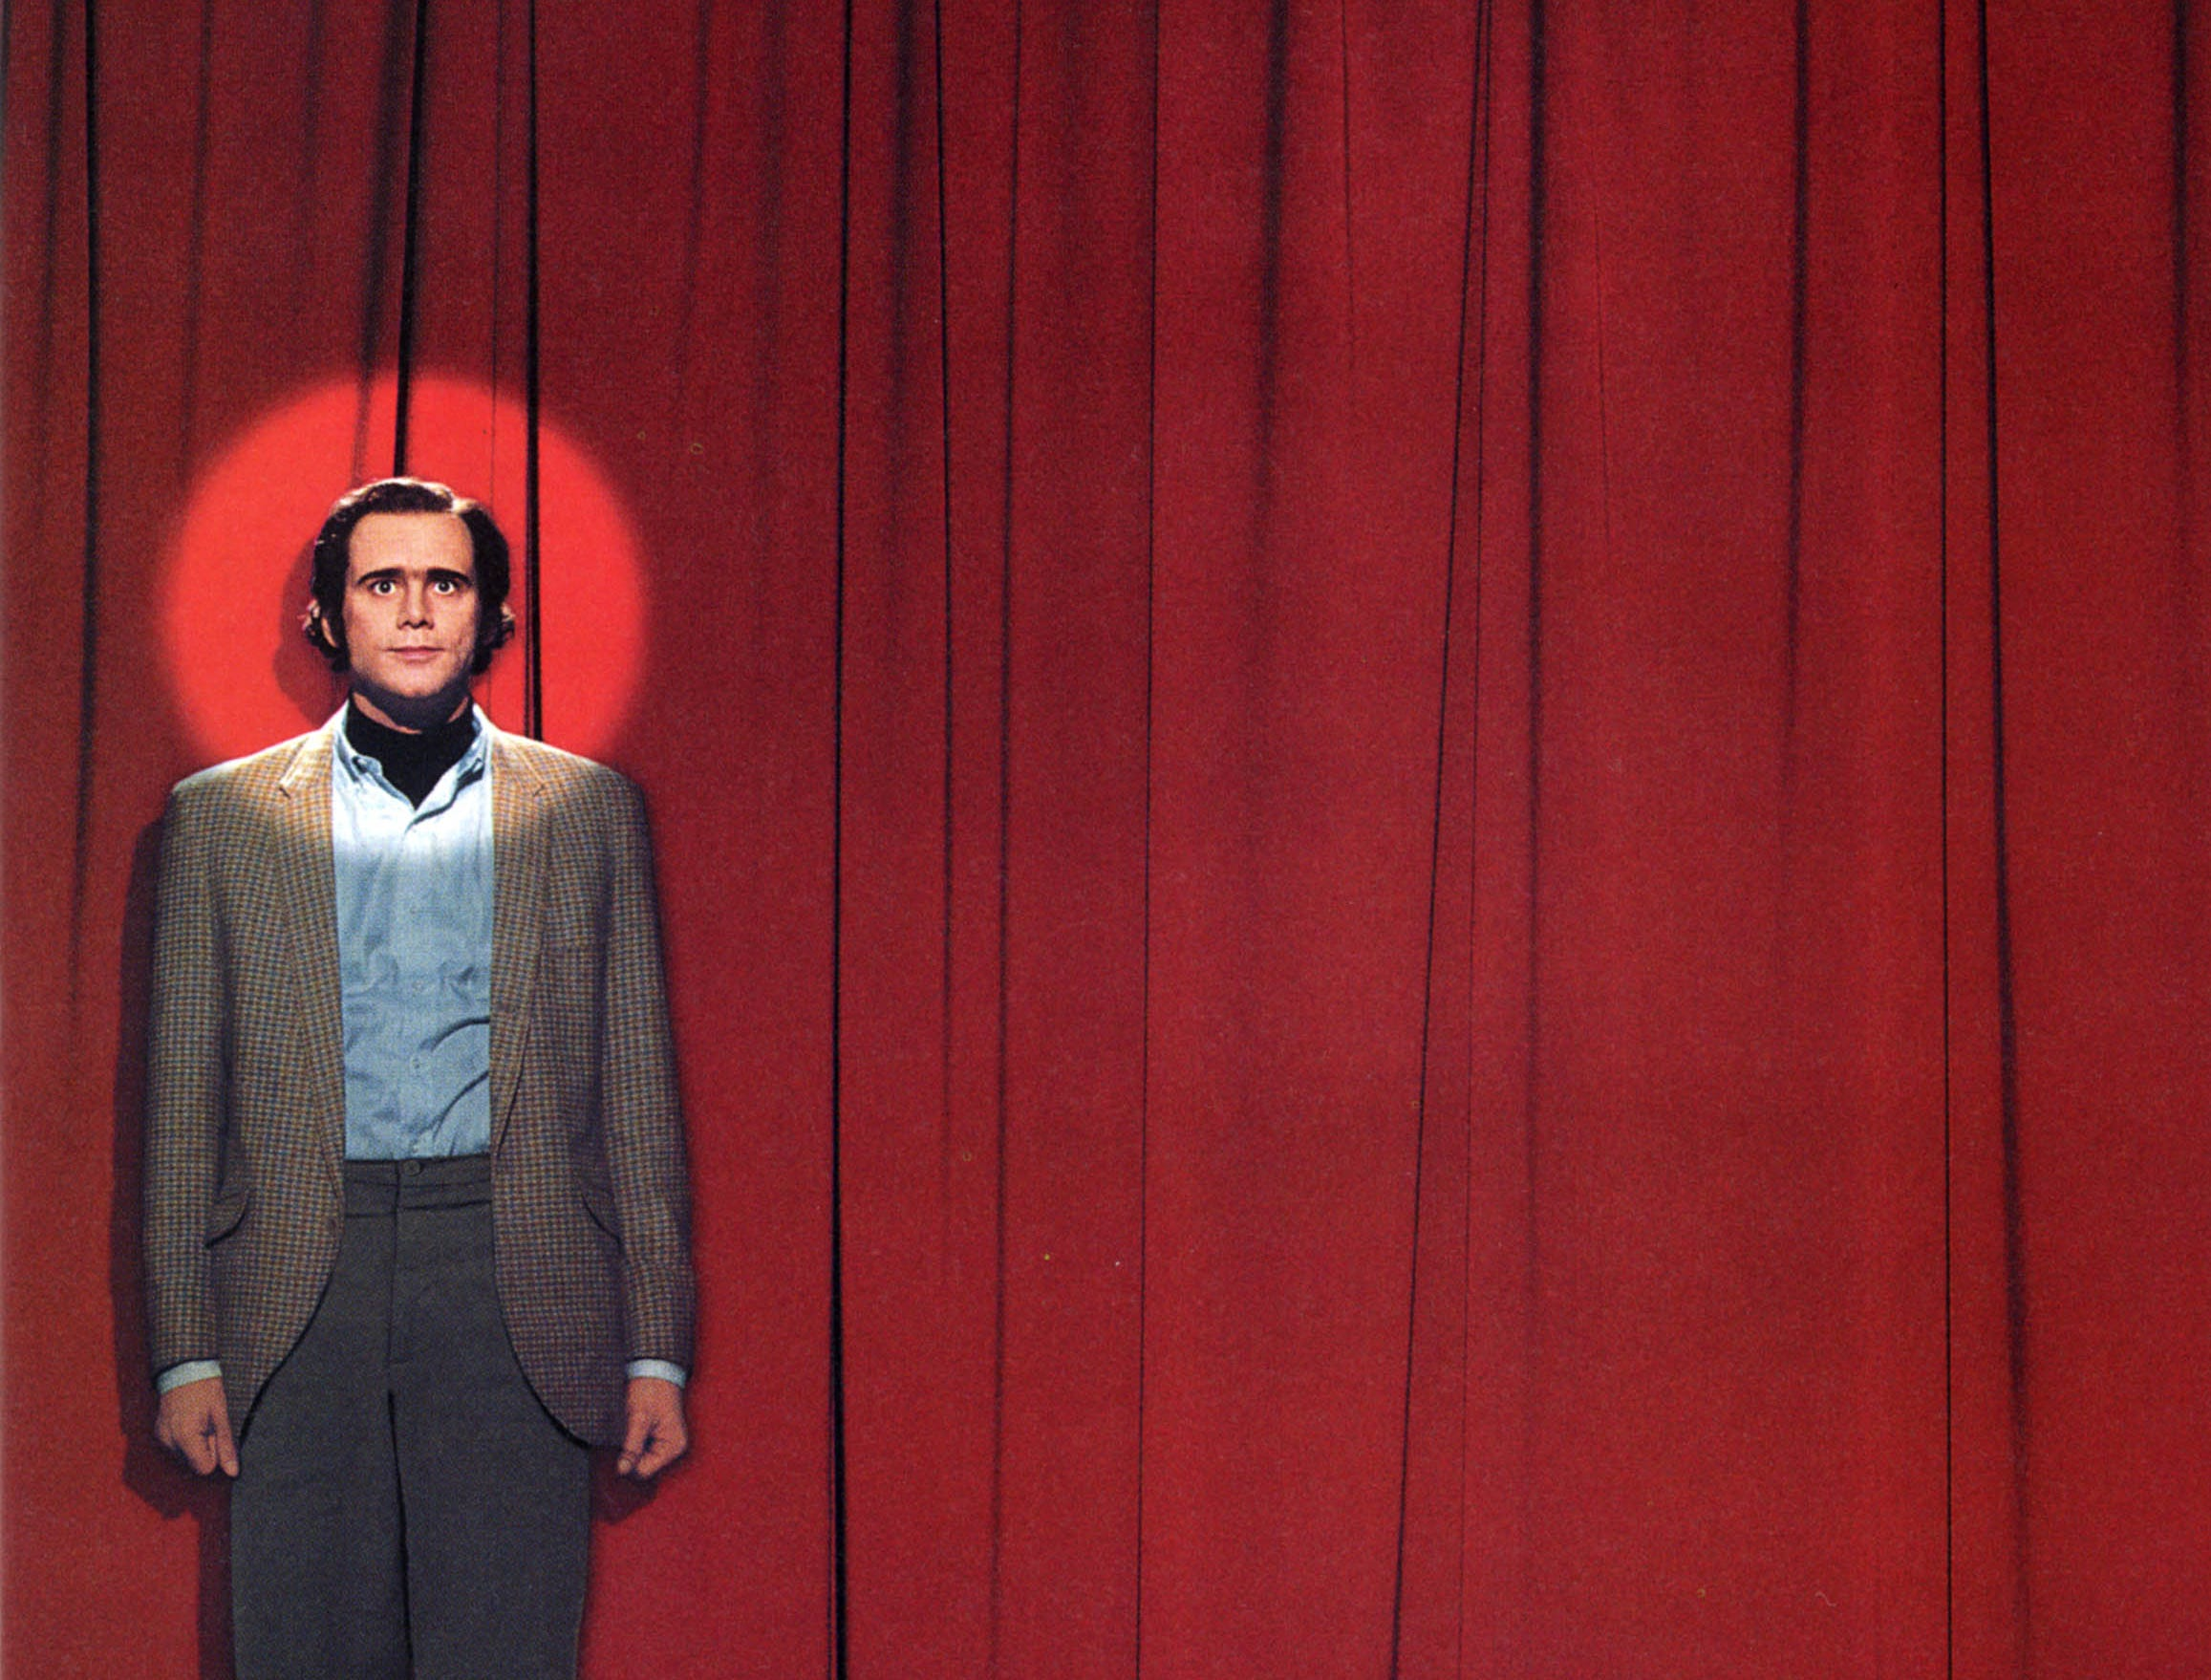 """Man on the Moon"" (1999) - Jim Carrey stars as the eccentric comedian Andy Kaufman. This Milos Forman film also stars Danny DeVito and won a Golden Globe for Carrey's performance."